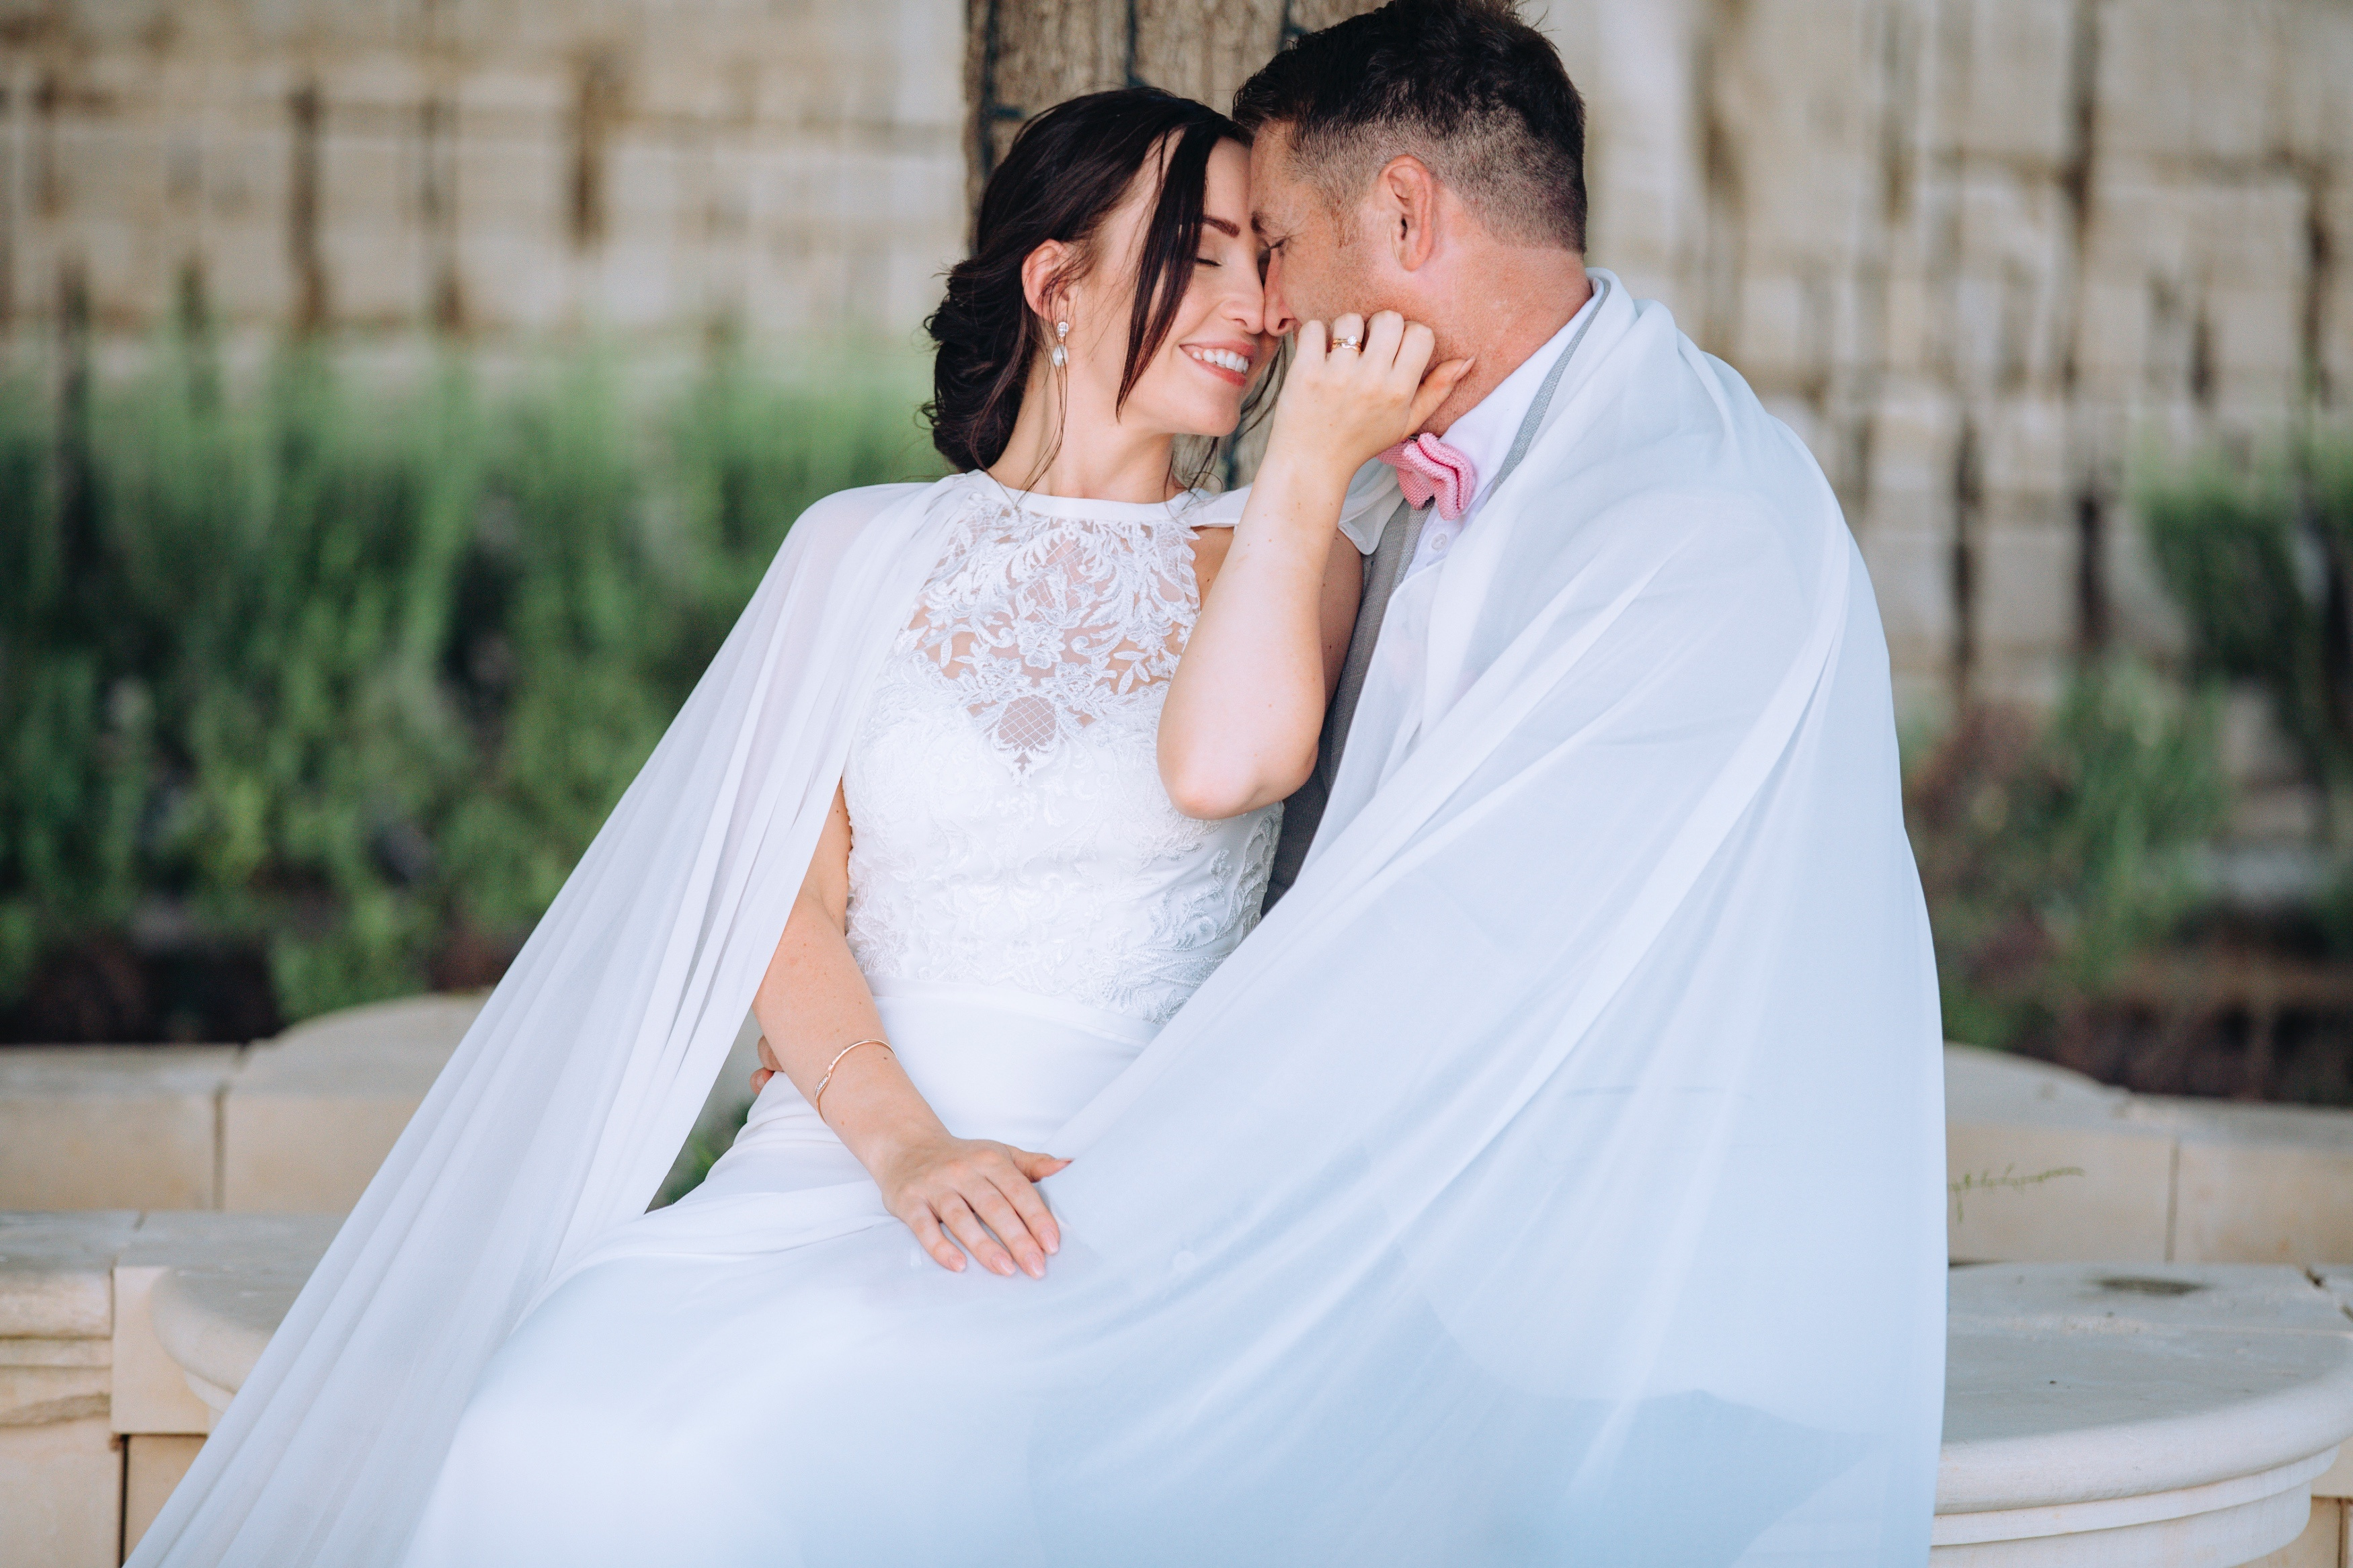 Romantic wedding at Limestone Heritage